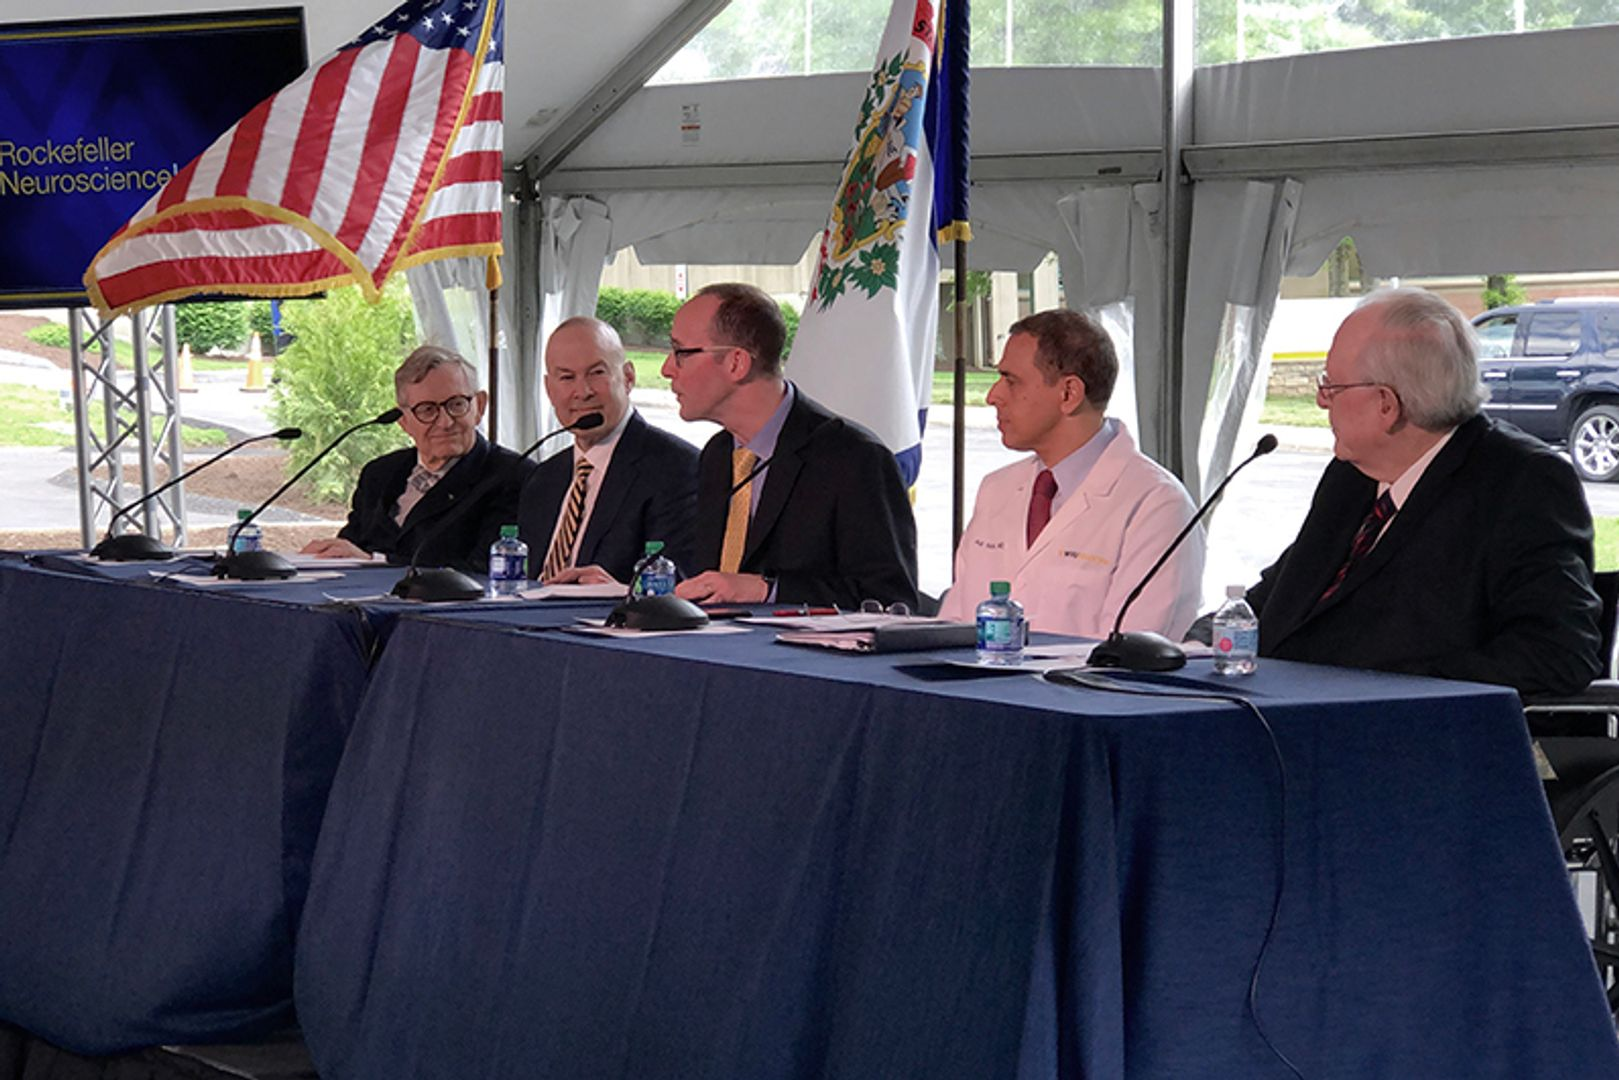 five men sitting behind microphones at a table draped in dark blue cloth